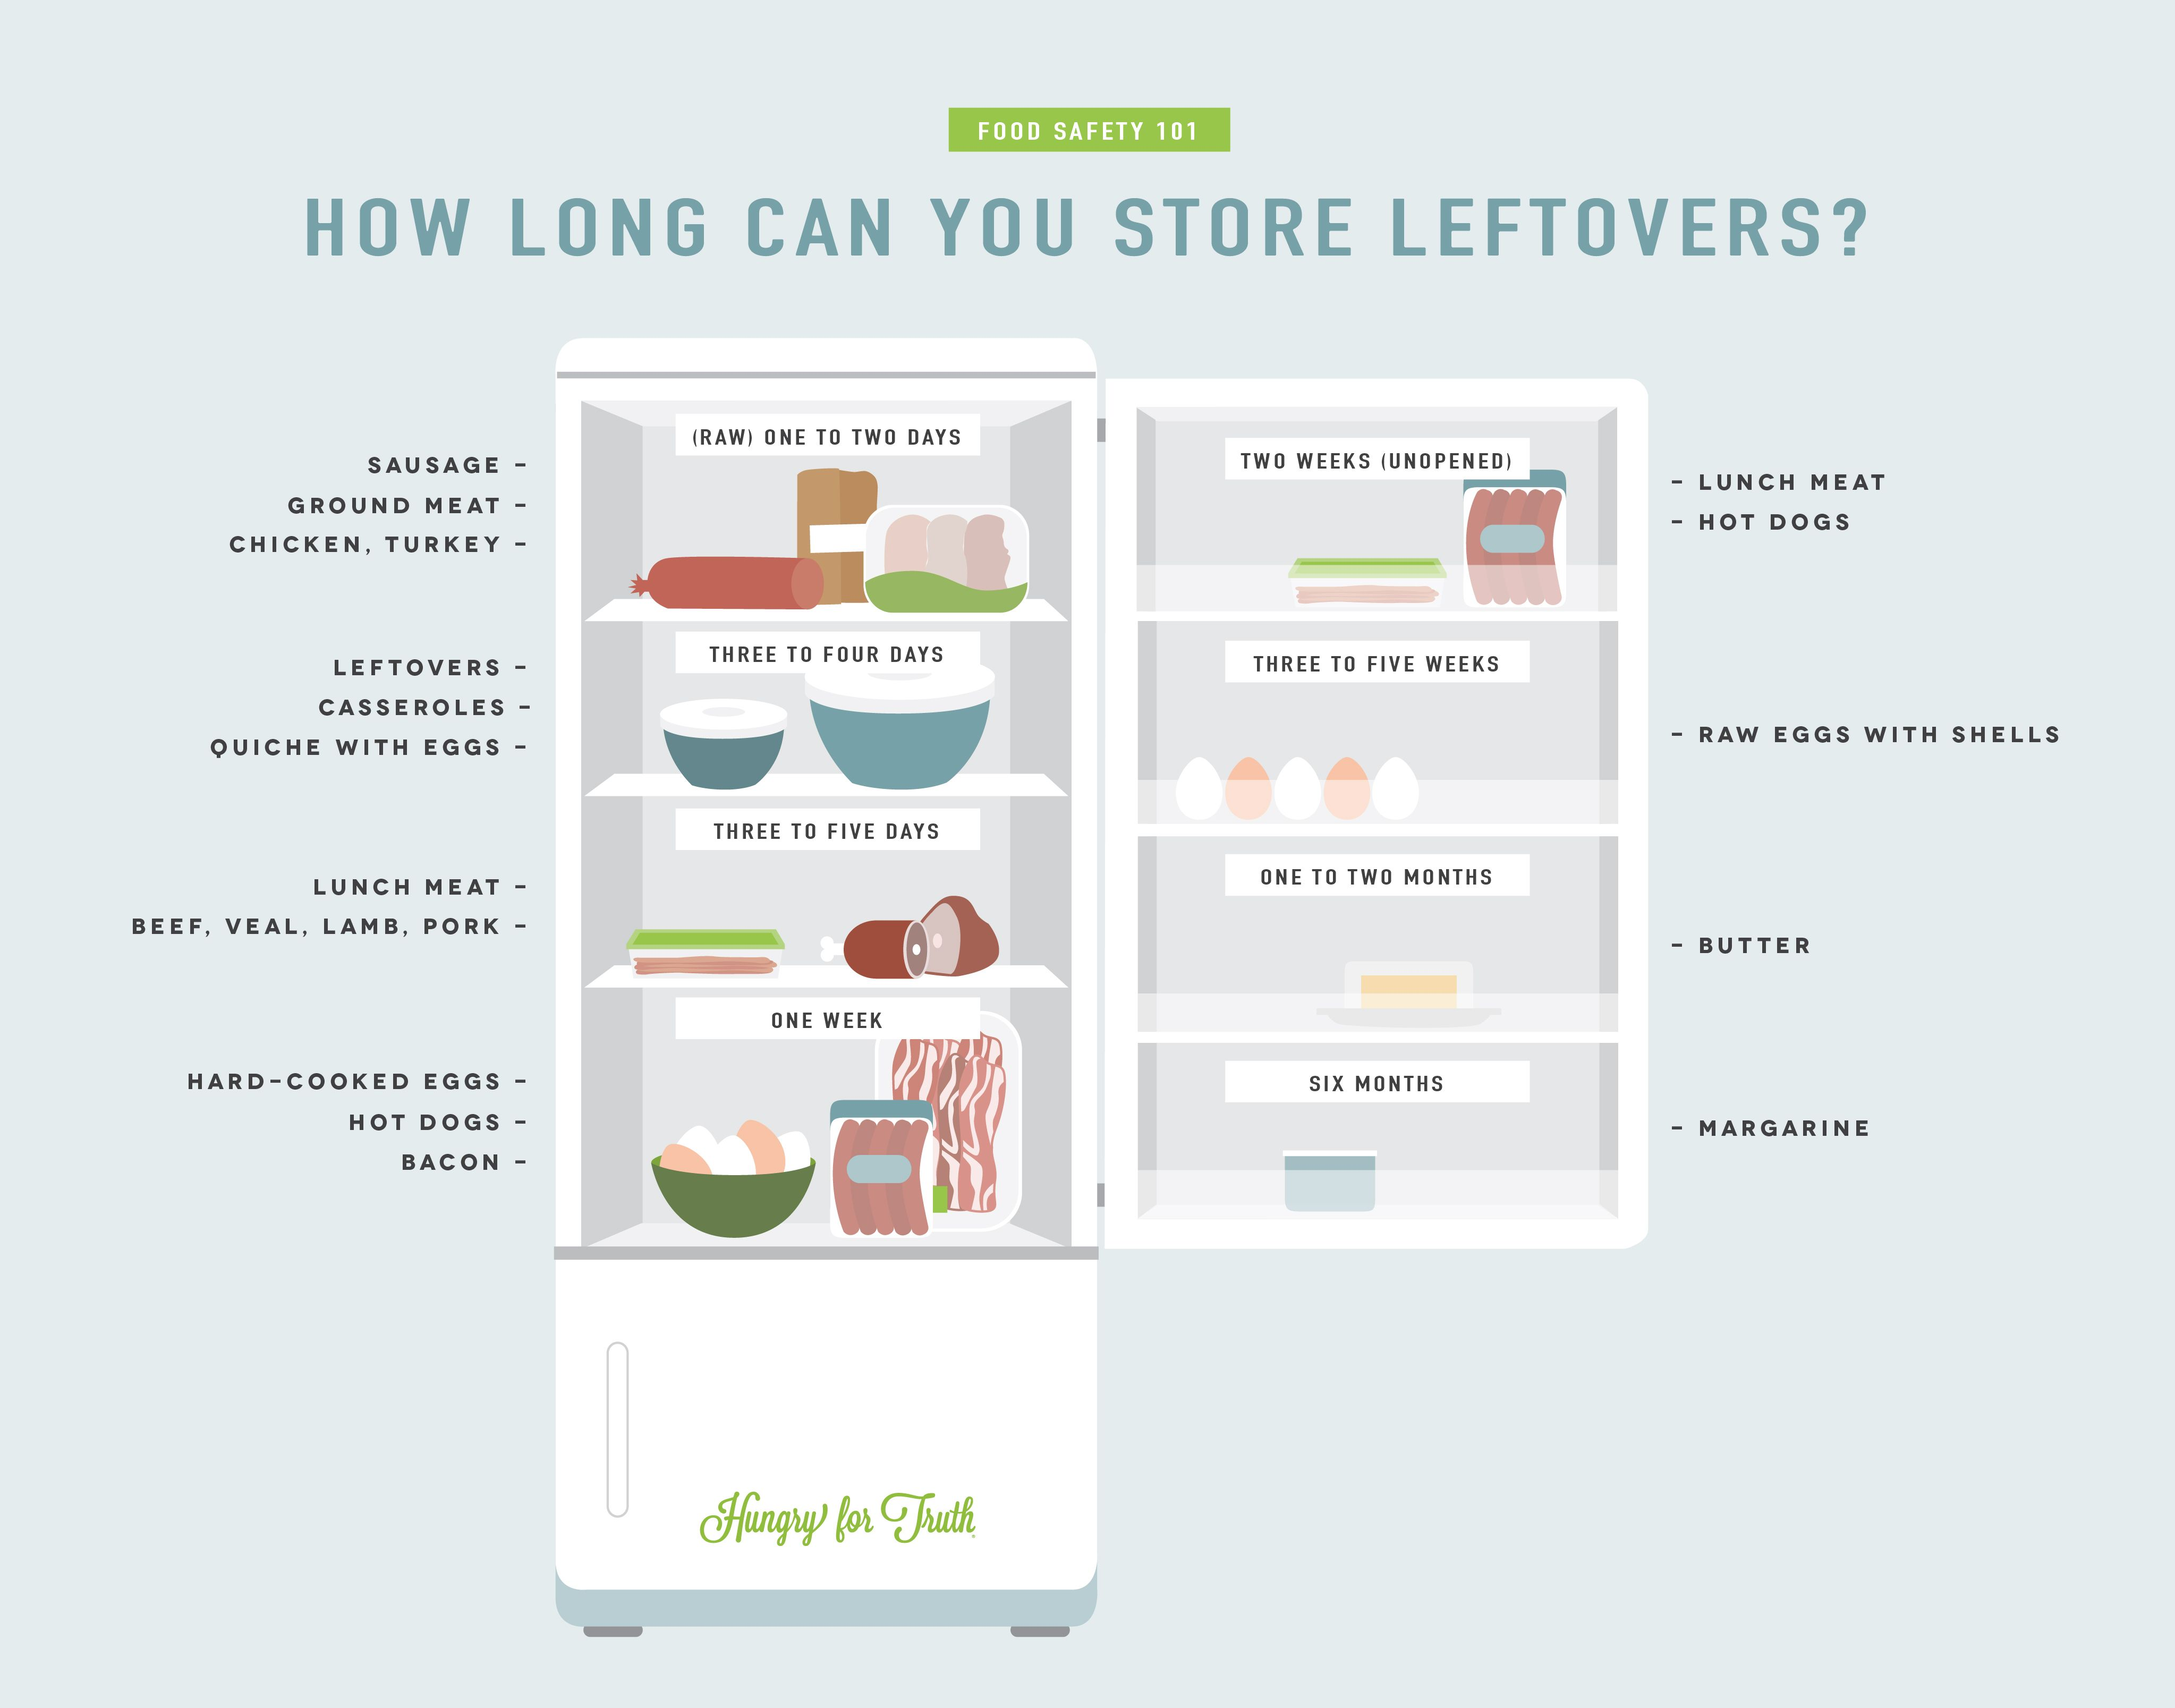 Your Complete Guide To Safe Food Storage From Frozen